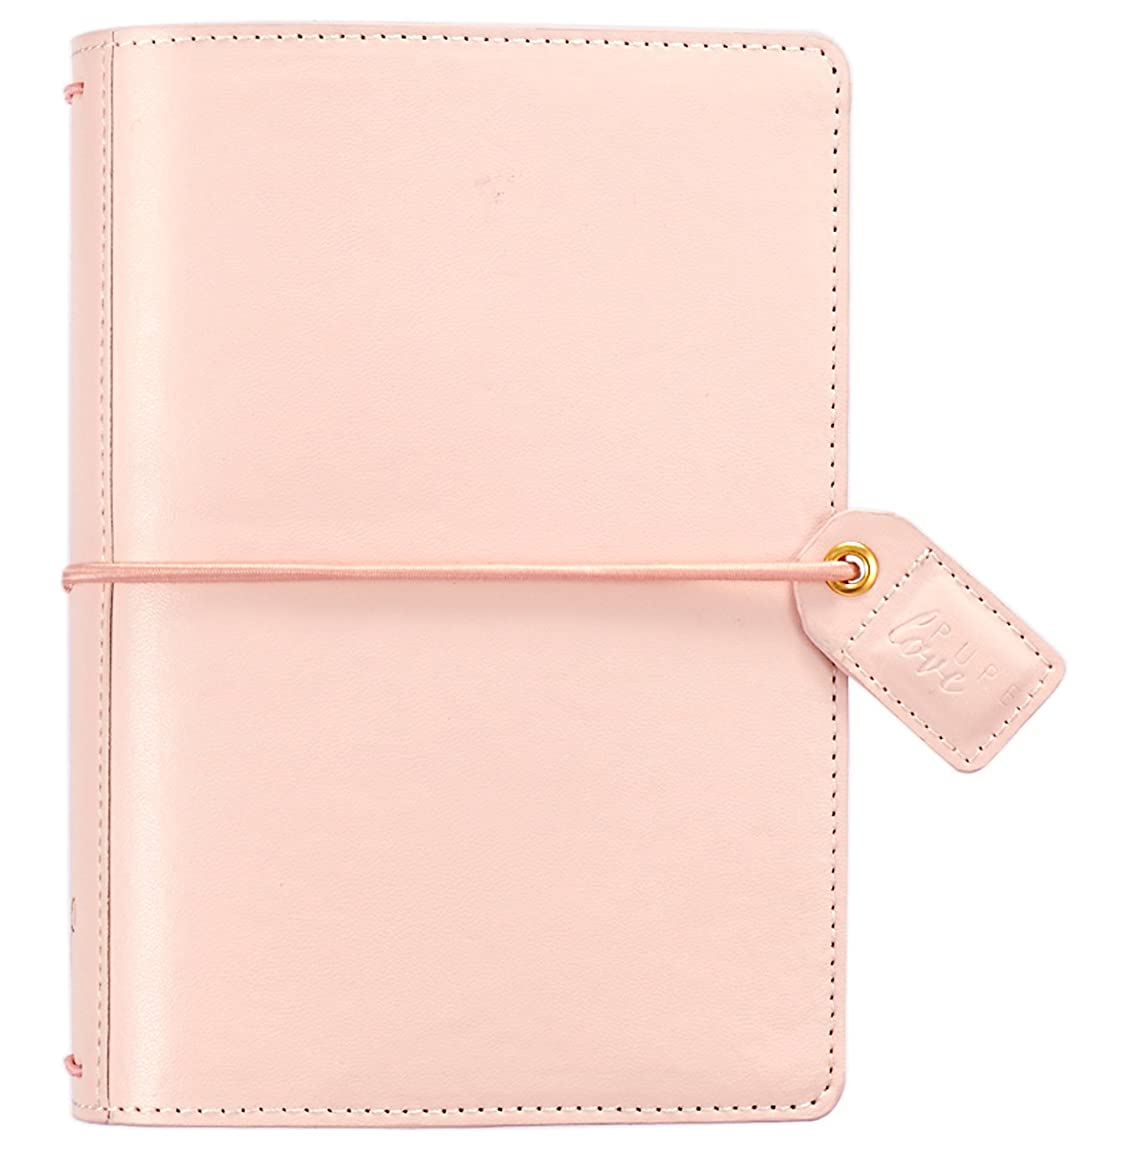 Webster's Pages Blush Pink Pocket Traveler Journal (TN001-PB)